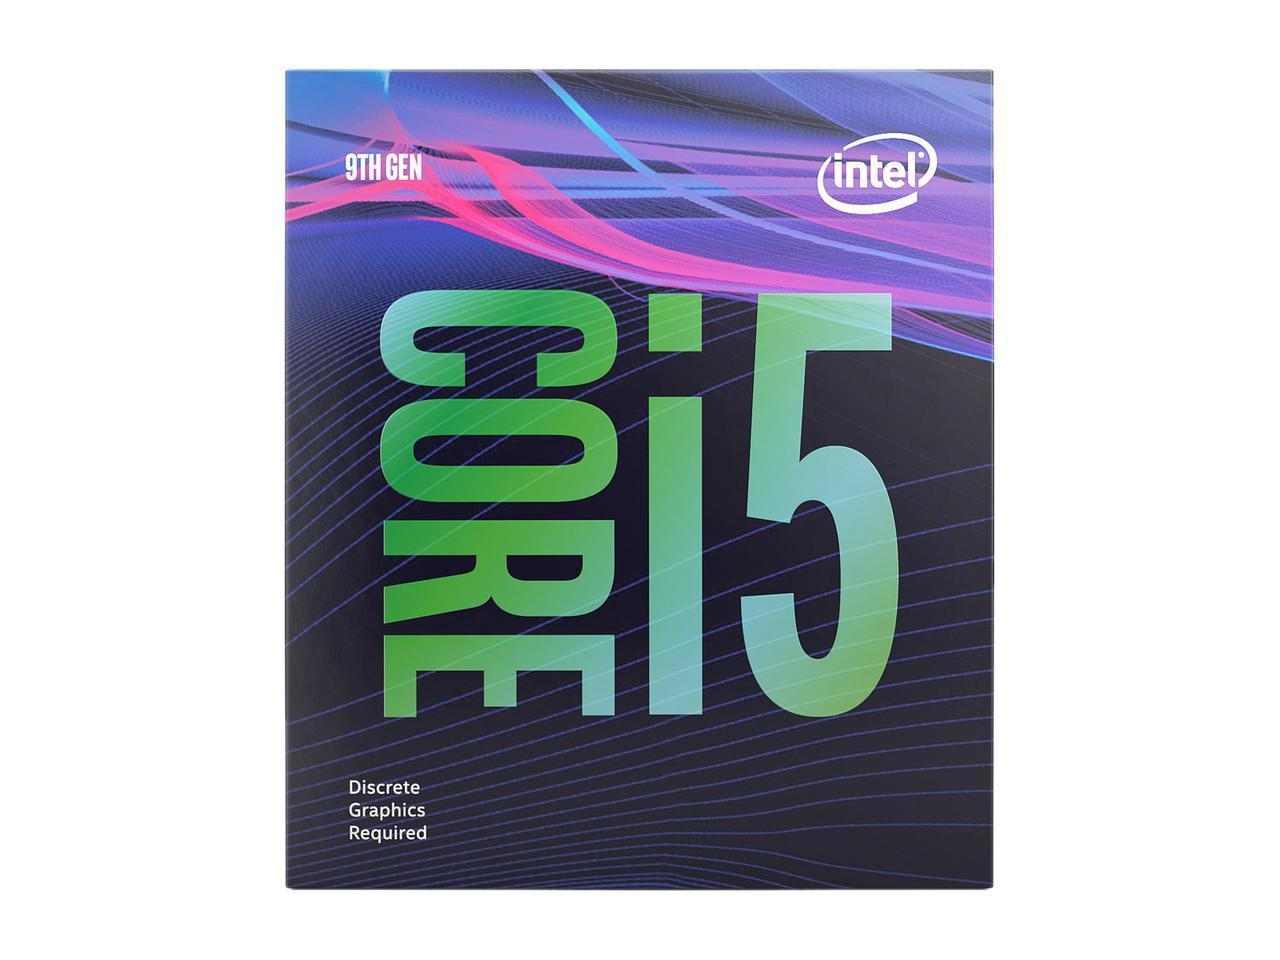 Процесор Intel Coffee Lake Core i5-9400F 2.9GHz (up to 4.10GHz ), 9MB, 65W LGA1151 (300 Series)